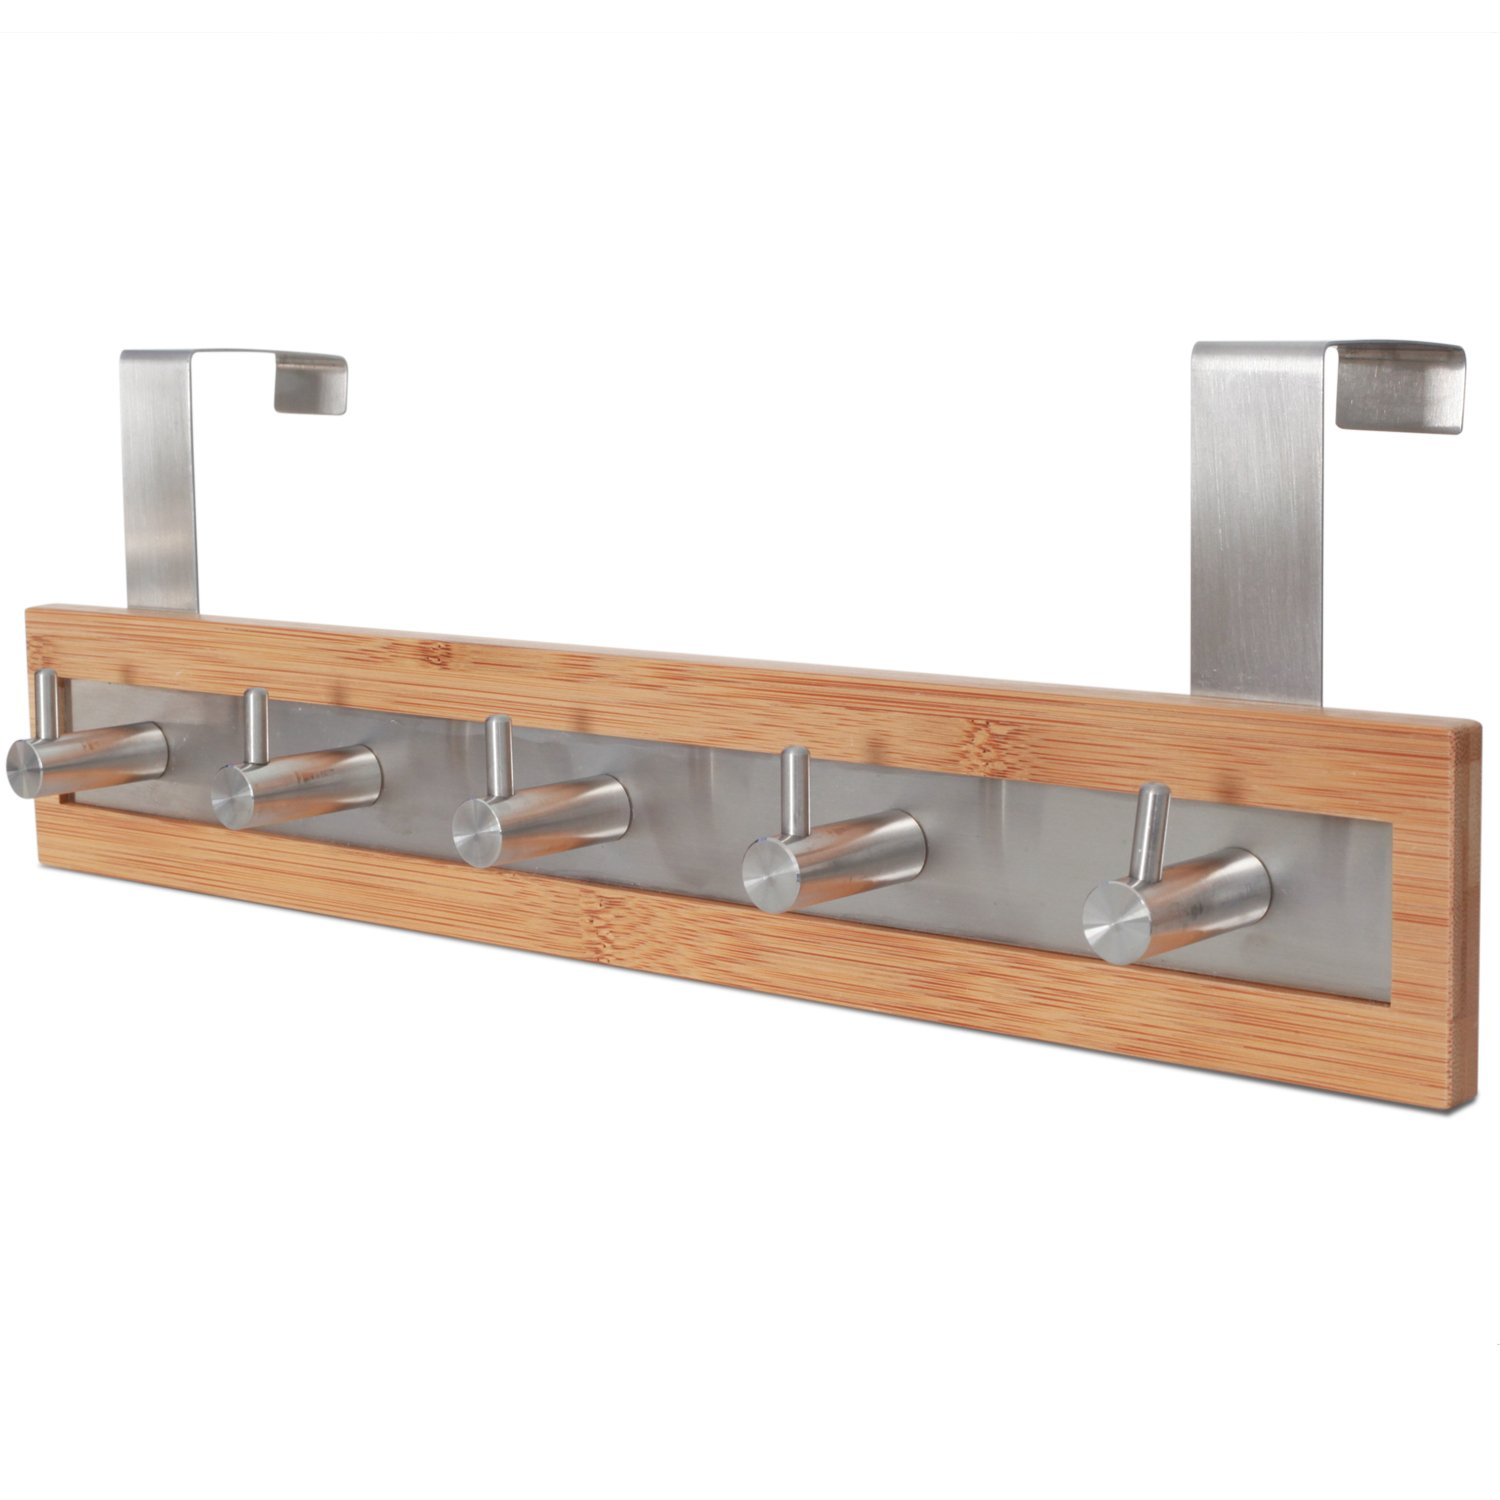 ToiletTree Products Bamboo Wood & Stainless Steel Over the Door Towel Rack, 3 Hooks SYNCHKG053112